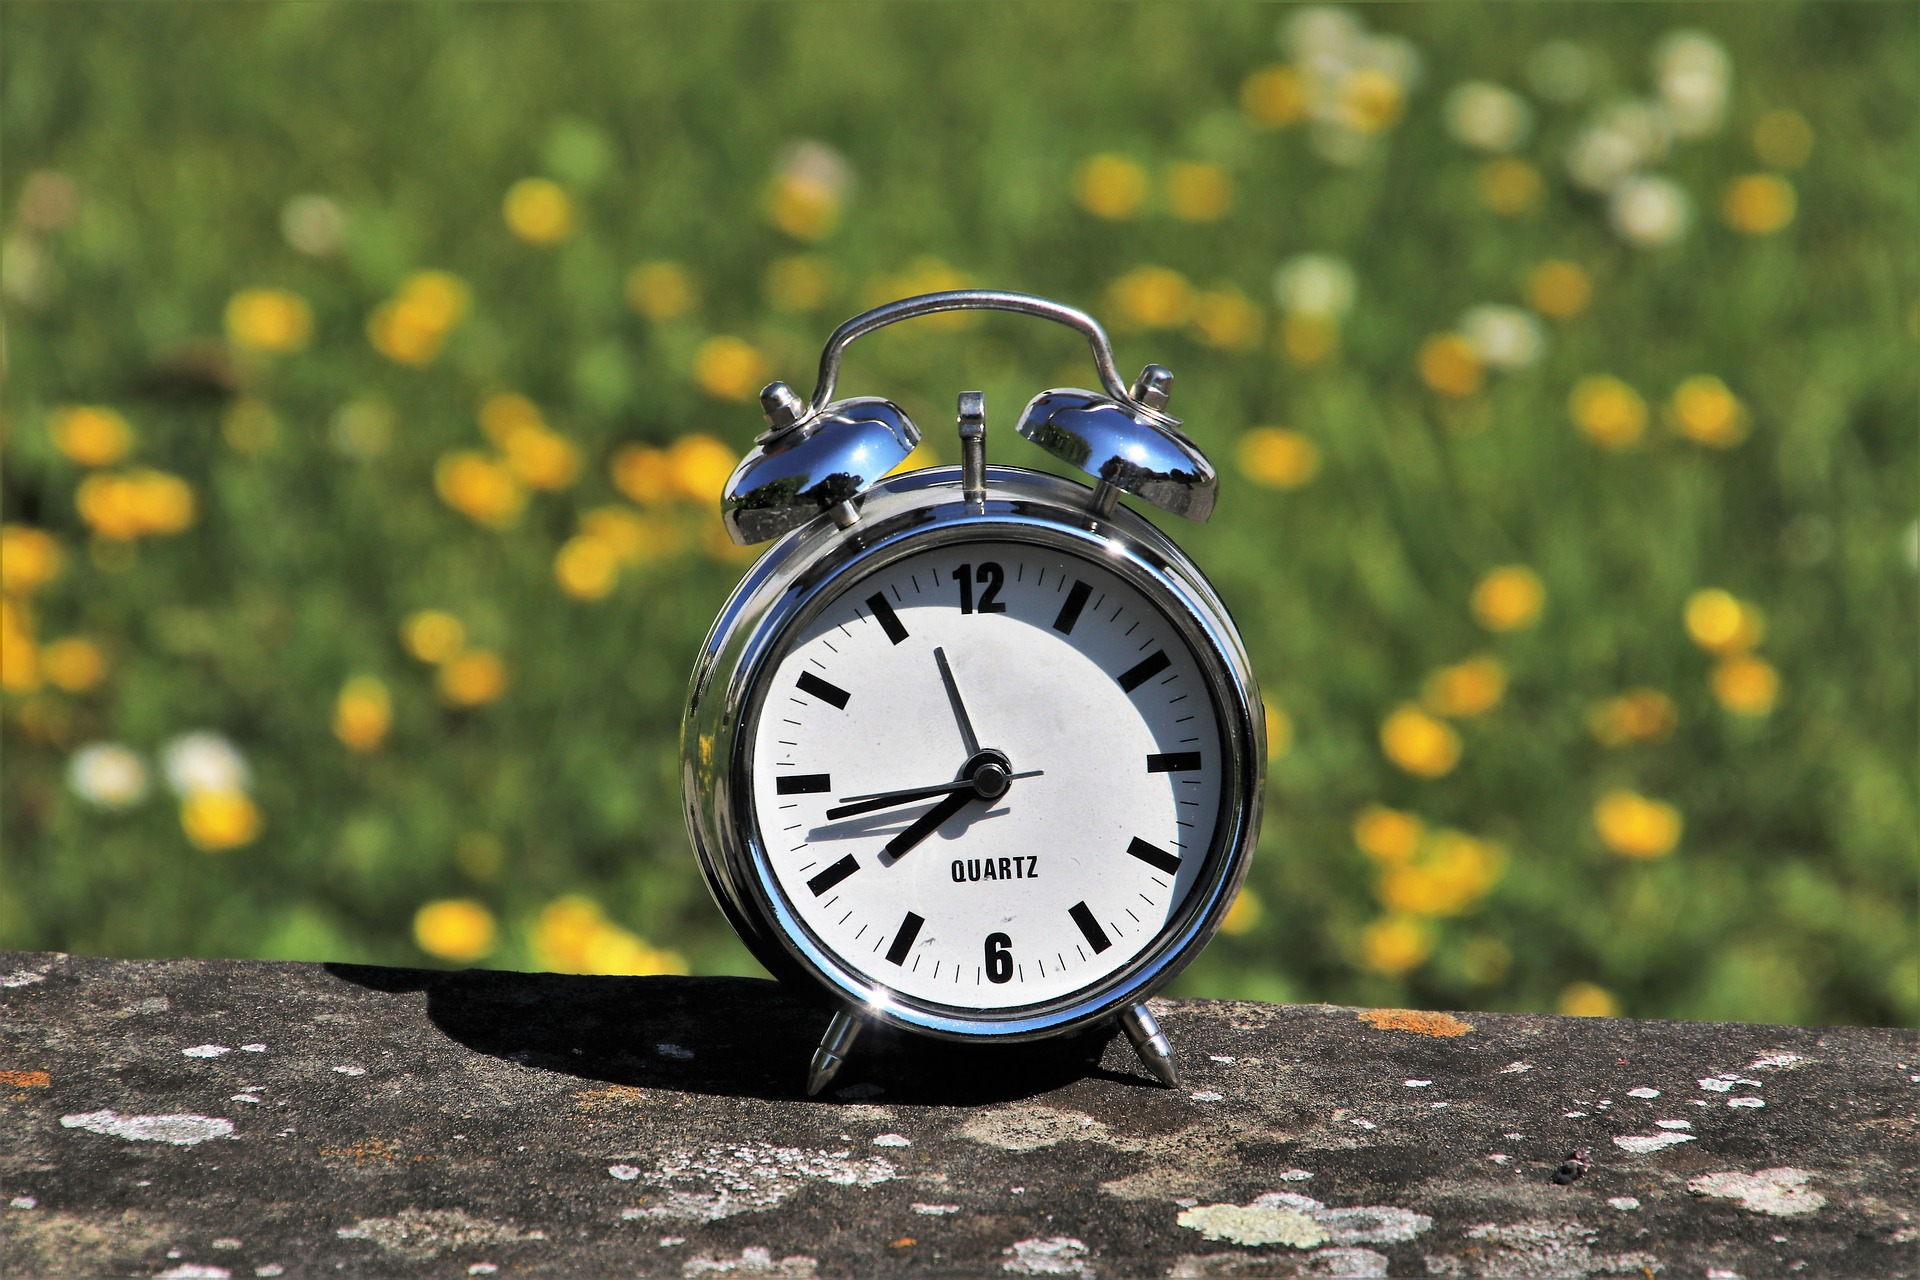 Don't let Daylight Saving Time get you down